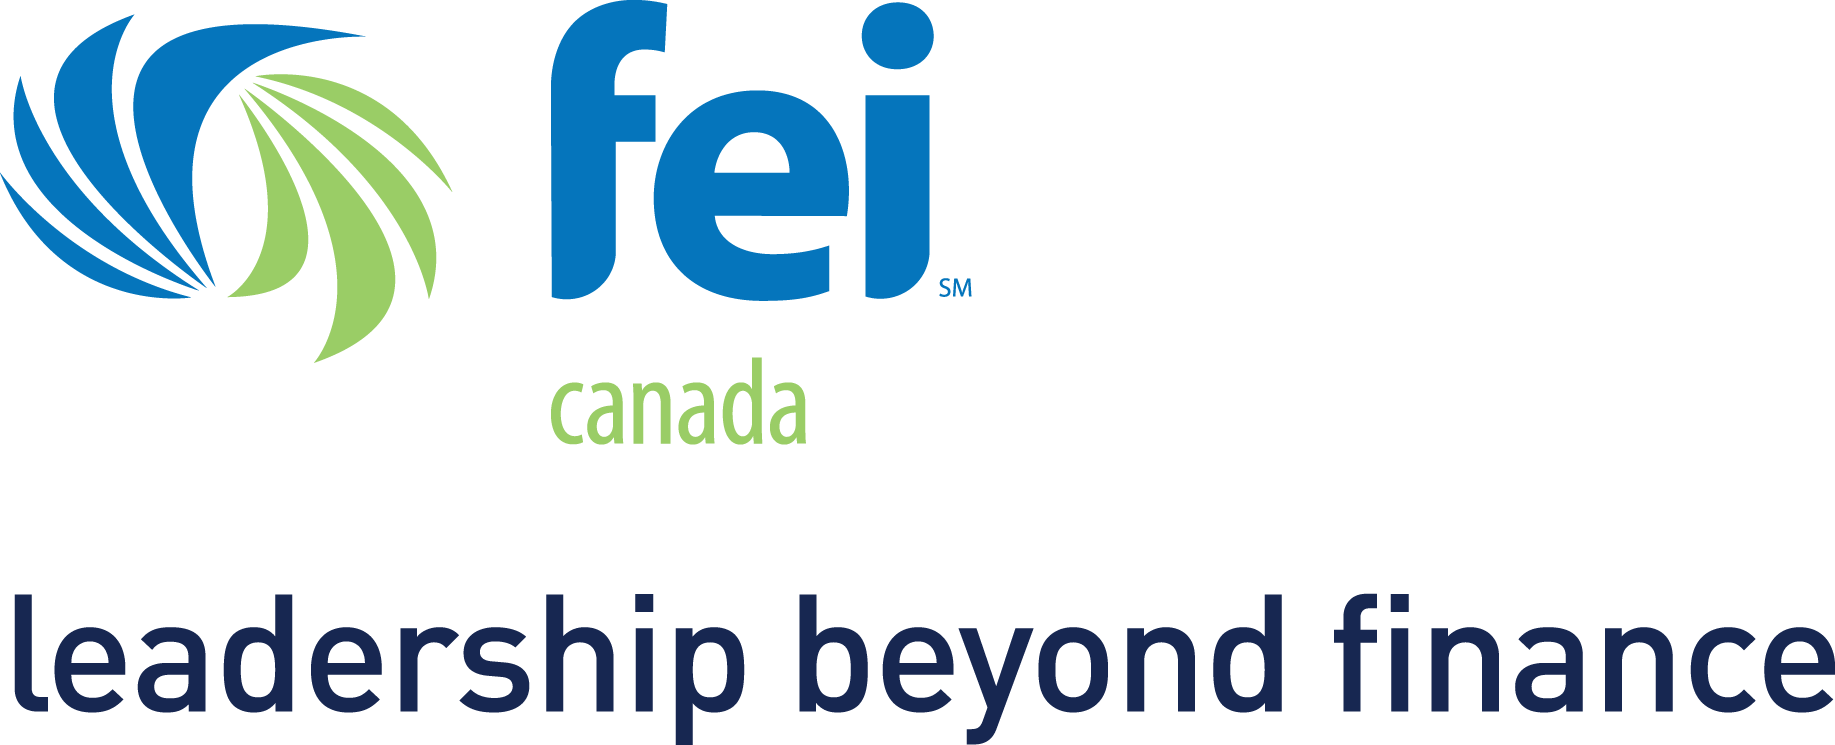 FEI_LeadershipBeyondFinance